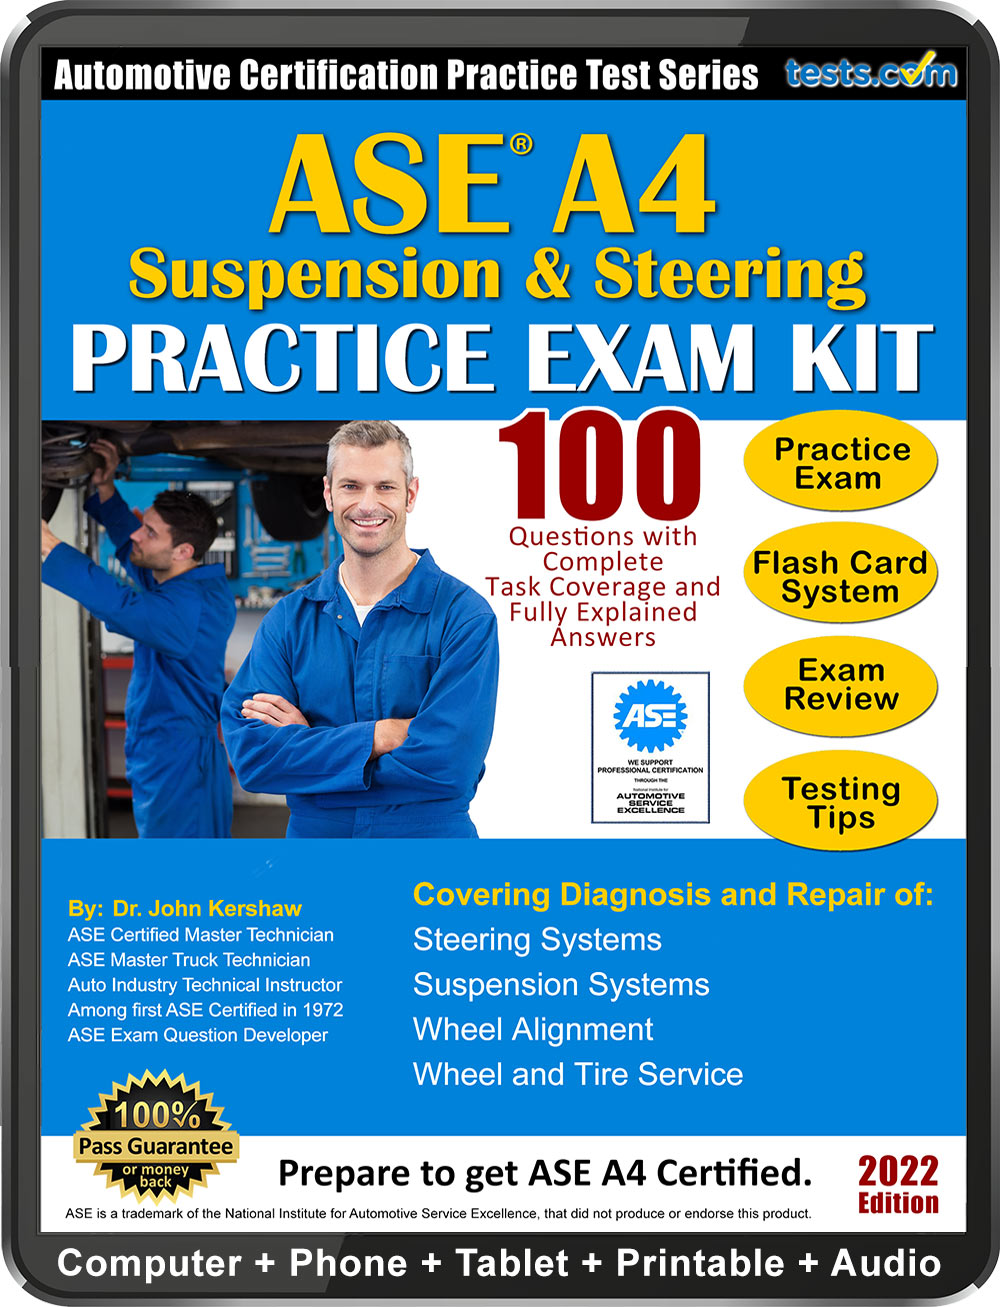 ase practice test a4 questions exam pass tests certification answers expert kit suspension study guaranteed written material money terms